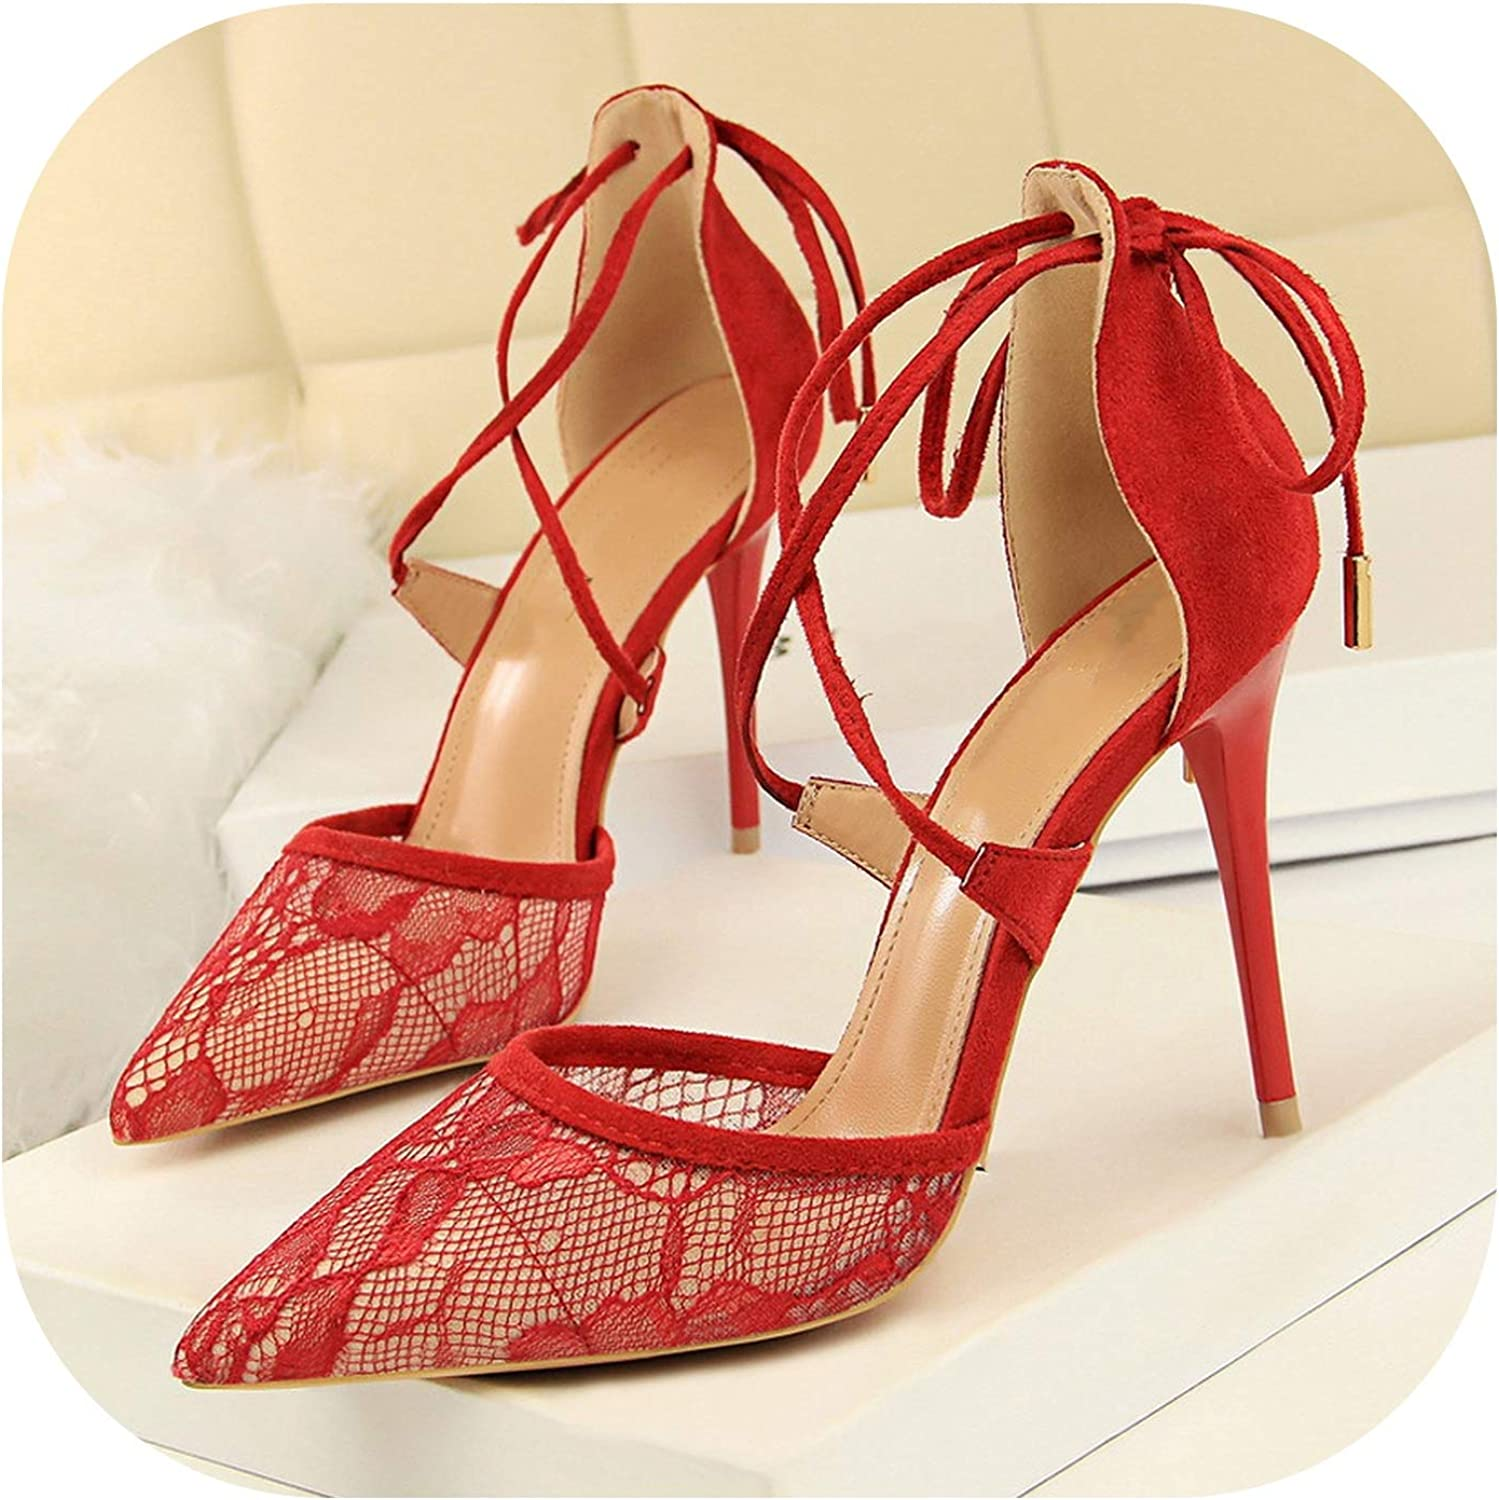 Style Sexy High-Heeled shoes with High-Heeled Shallow Mouth Pointed Mesh Lace Cross Strap Hollow Sandals .Ds-1627-6